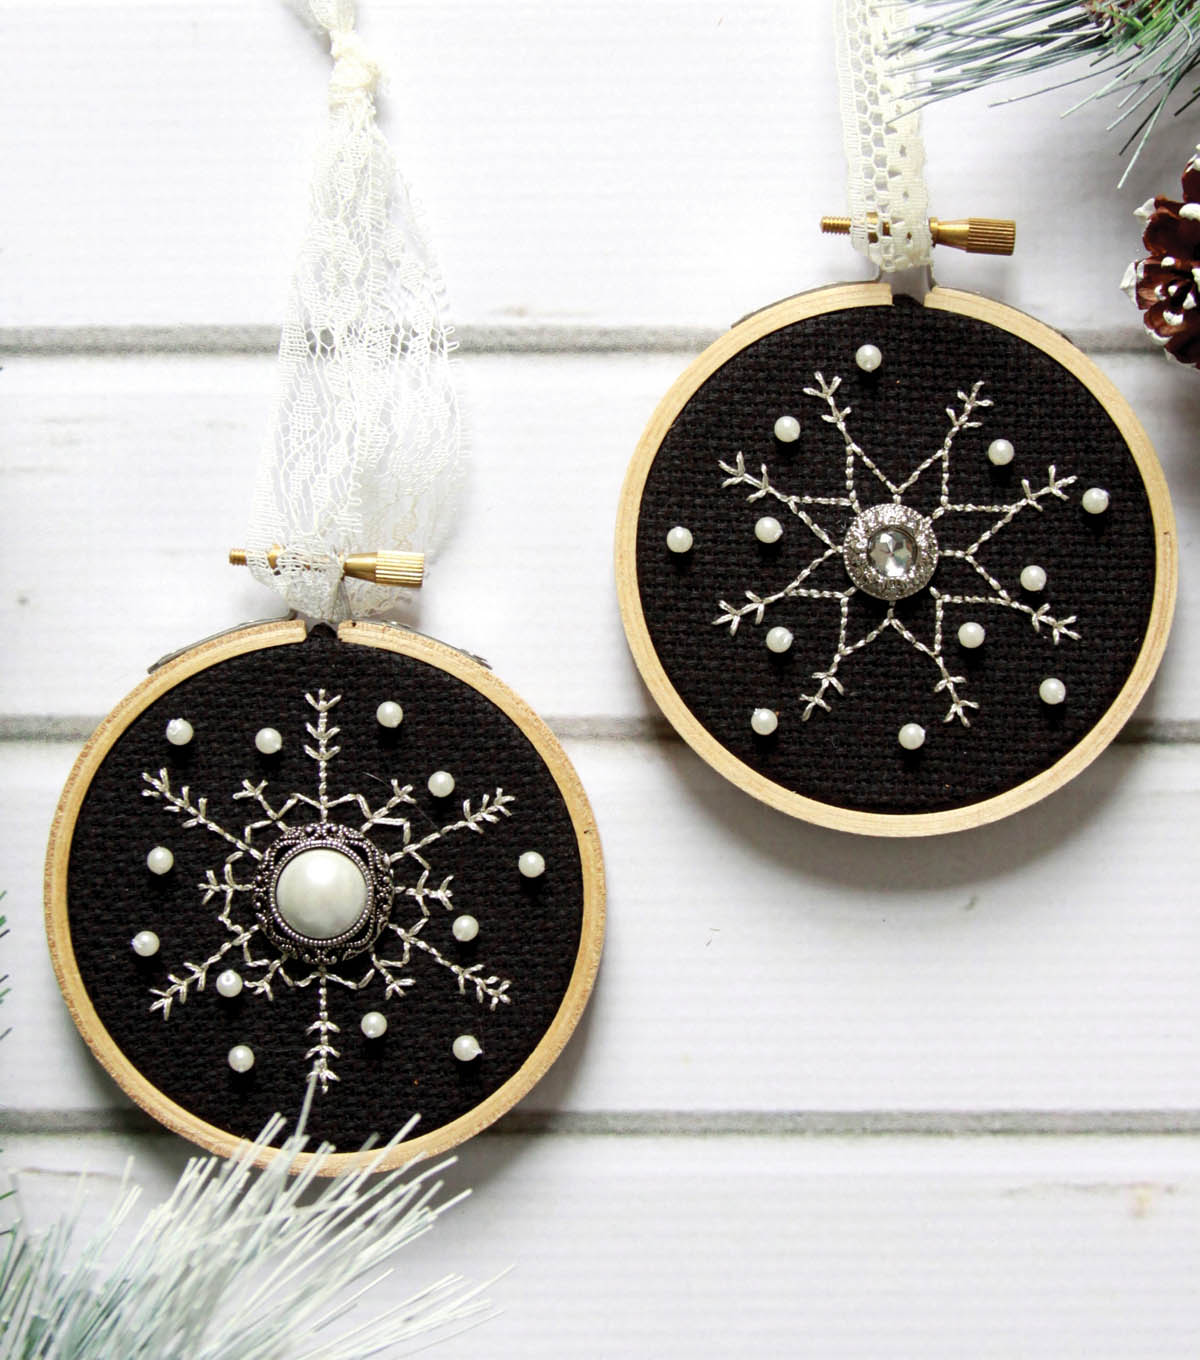 Stitched Snowflake Ornaments